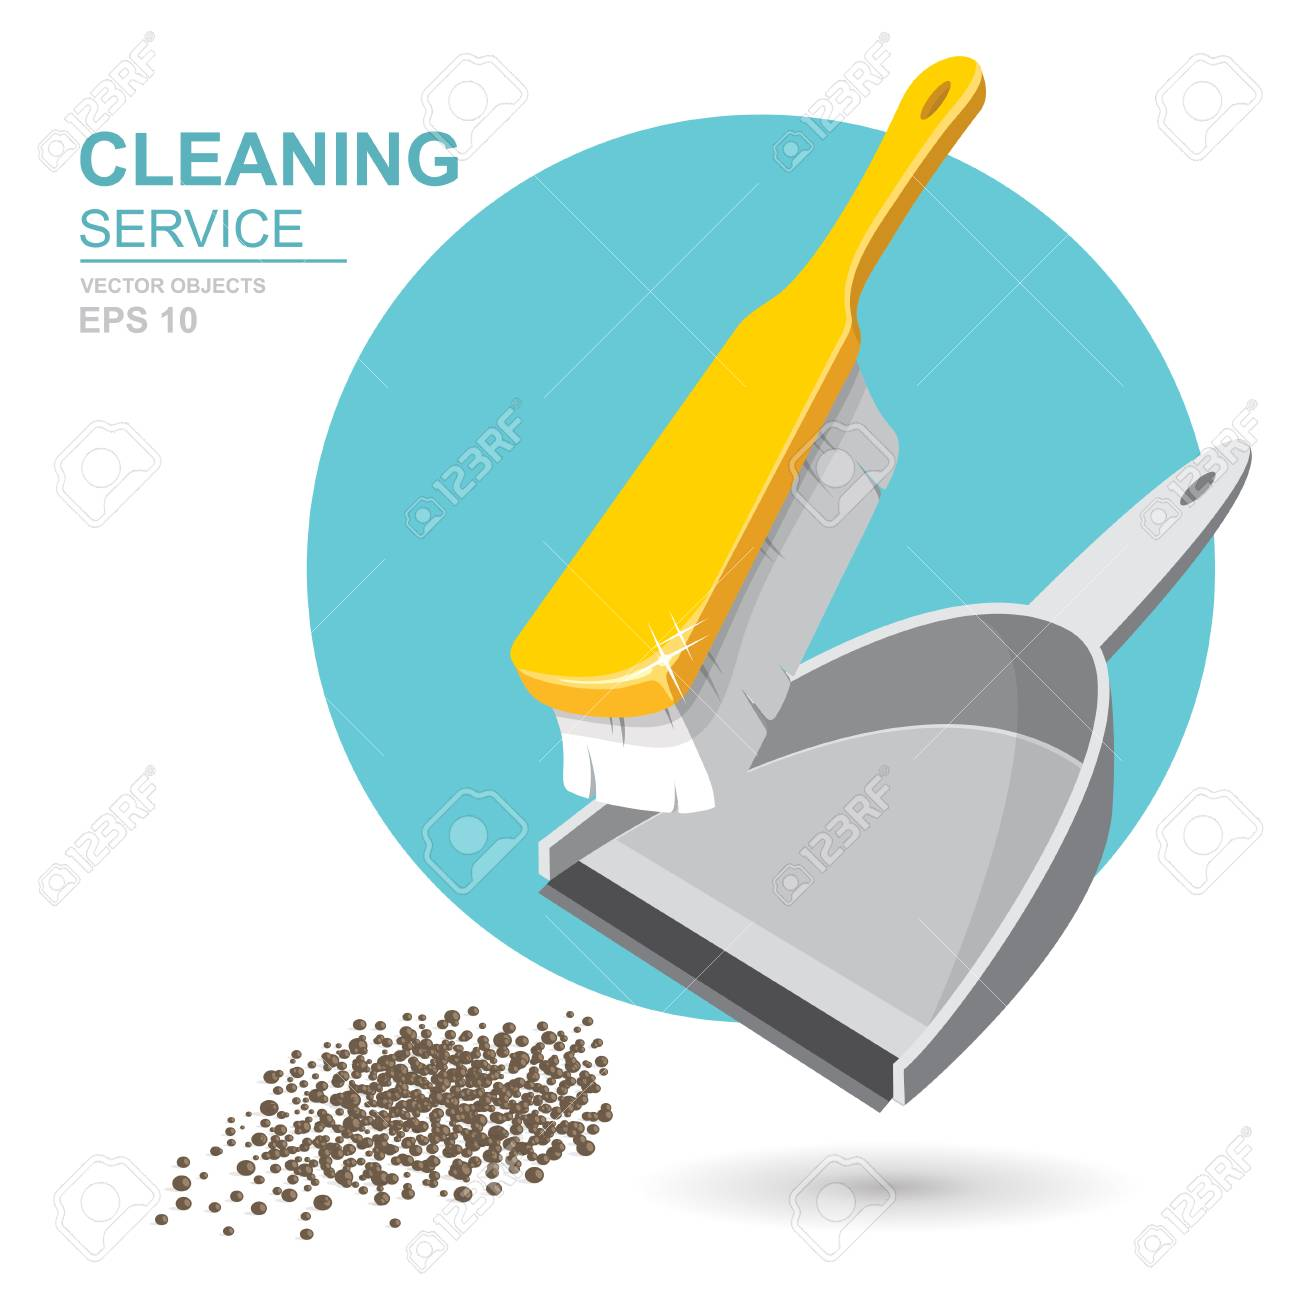 Vector Set of cleaning service elements. Cleaner. Cleaning supplies. Housework tools, House cleaning. Garbage, dustpan and brush. Template for banners, web sites, printed materials, infographics - 85203577